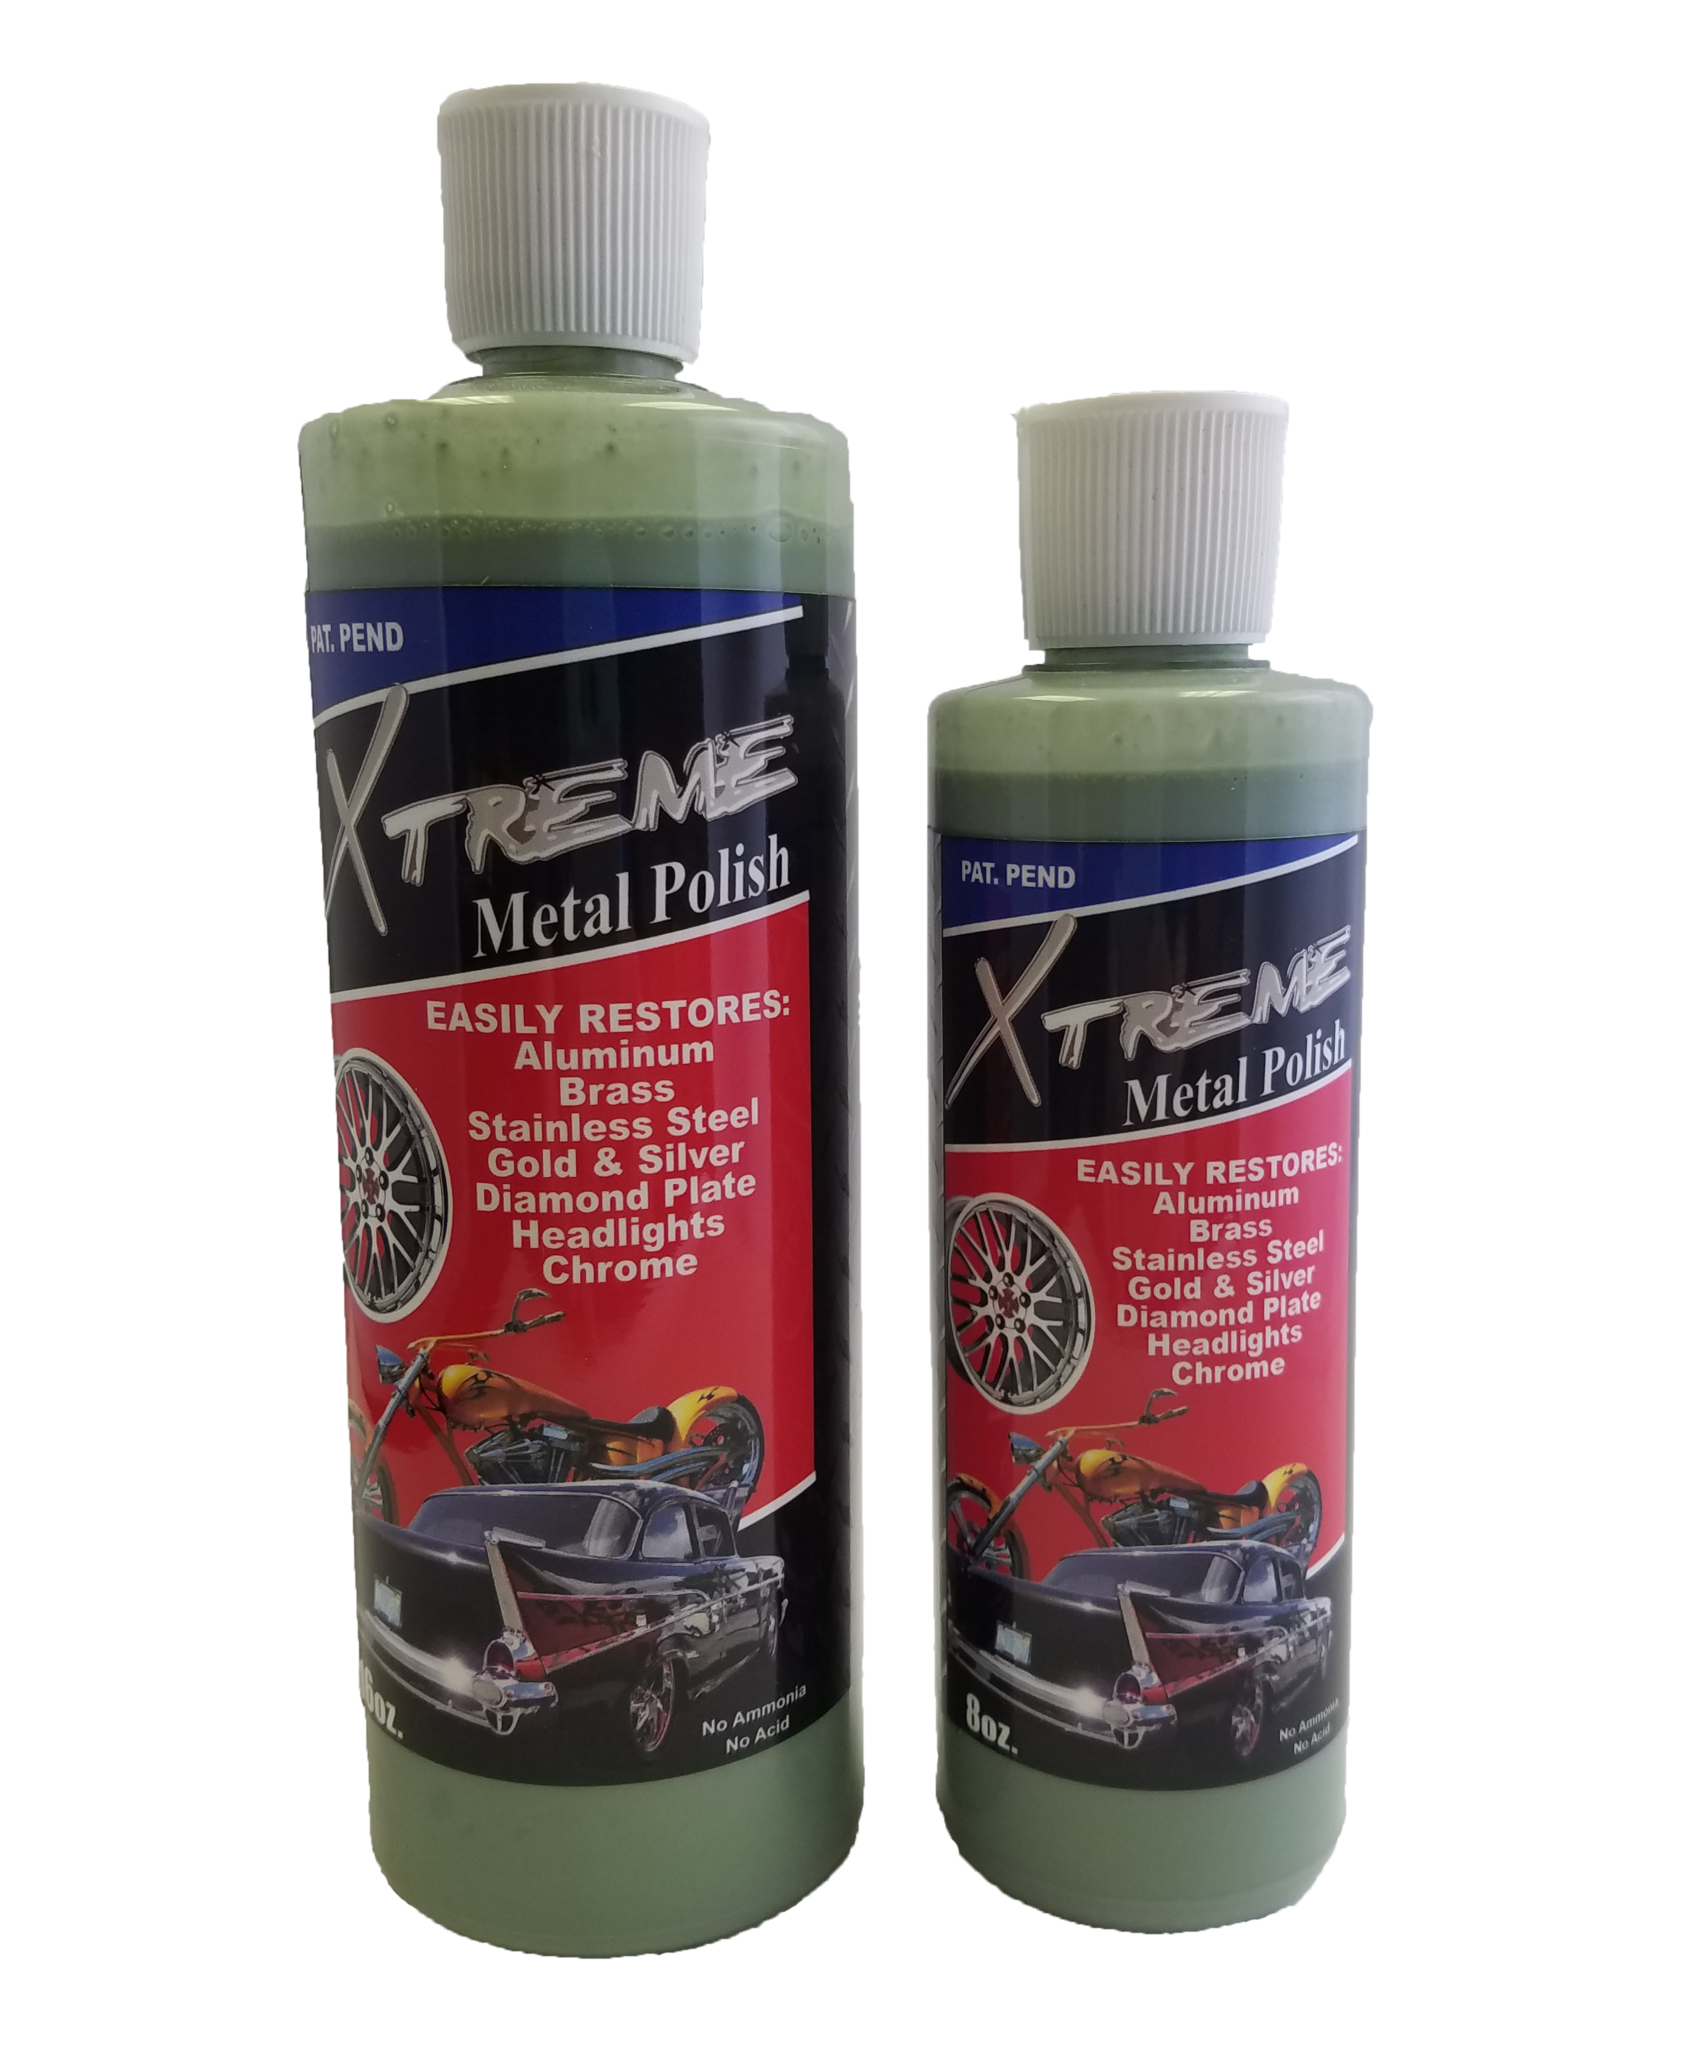 Xtreme Metal Polish 8 oz. and 16 oz.